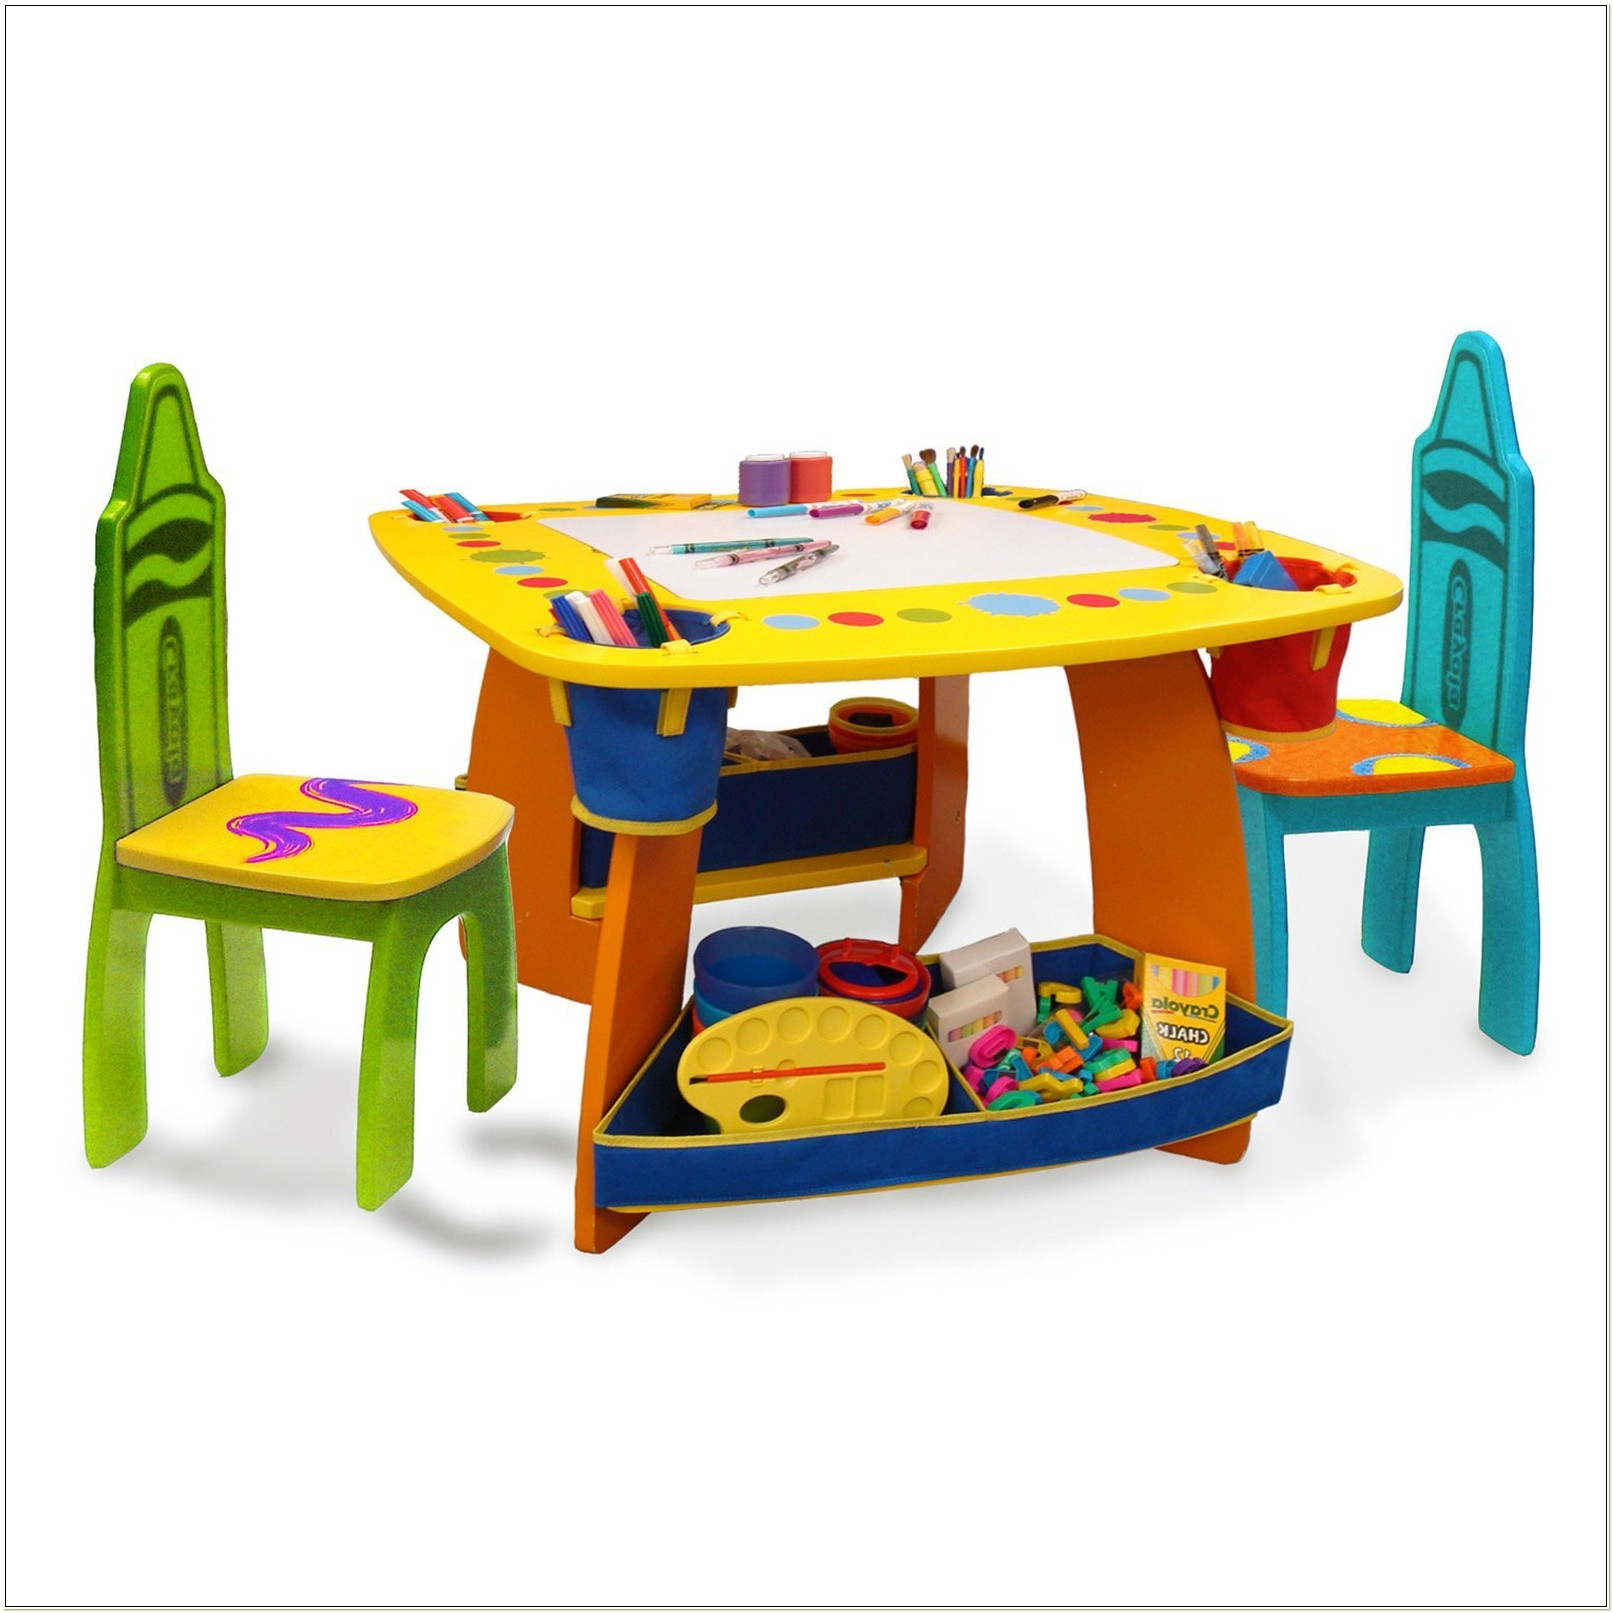 Crayola Wooden Art Table And Chairs Set